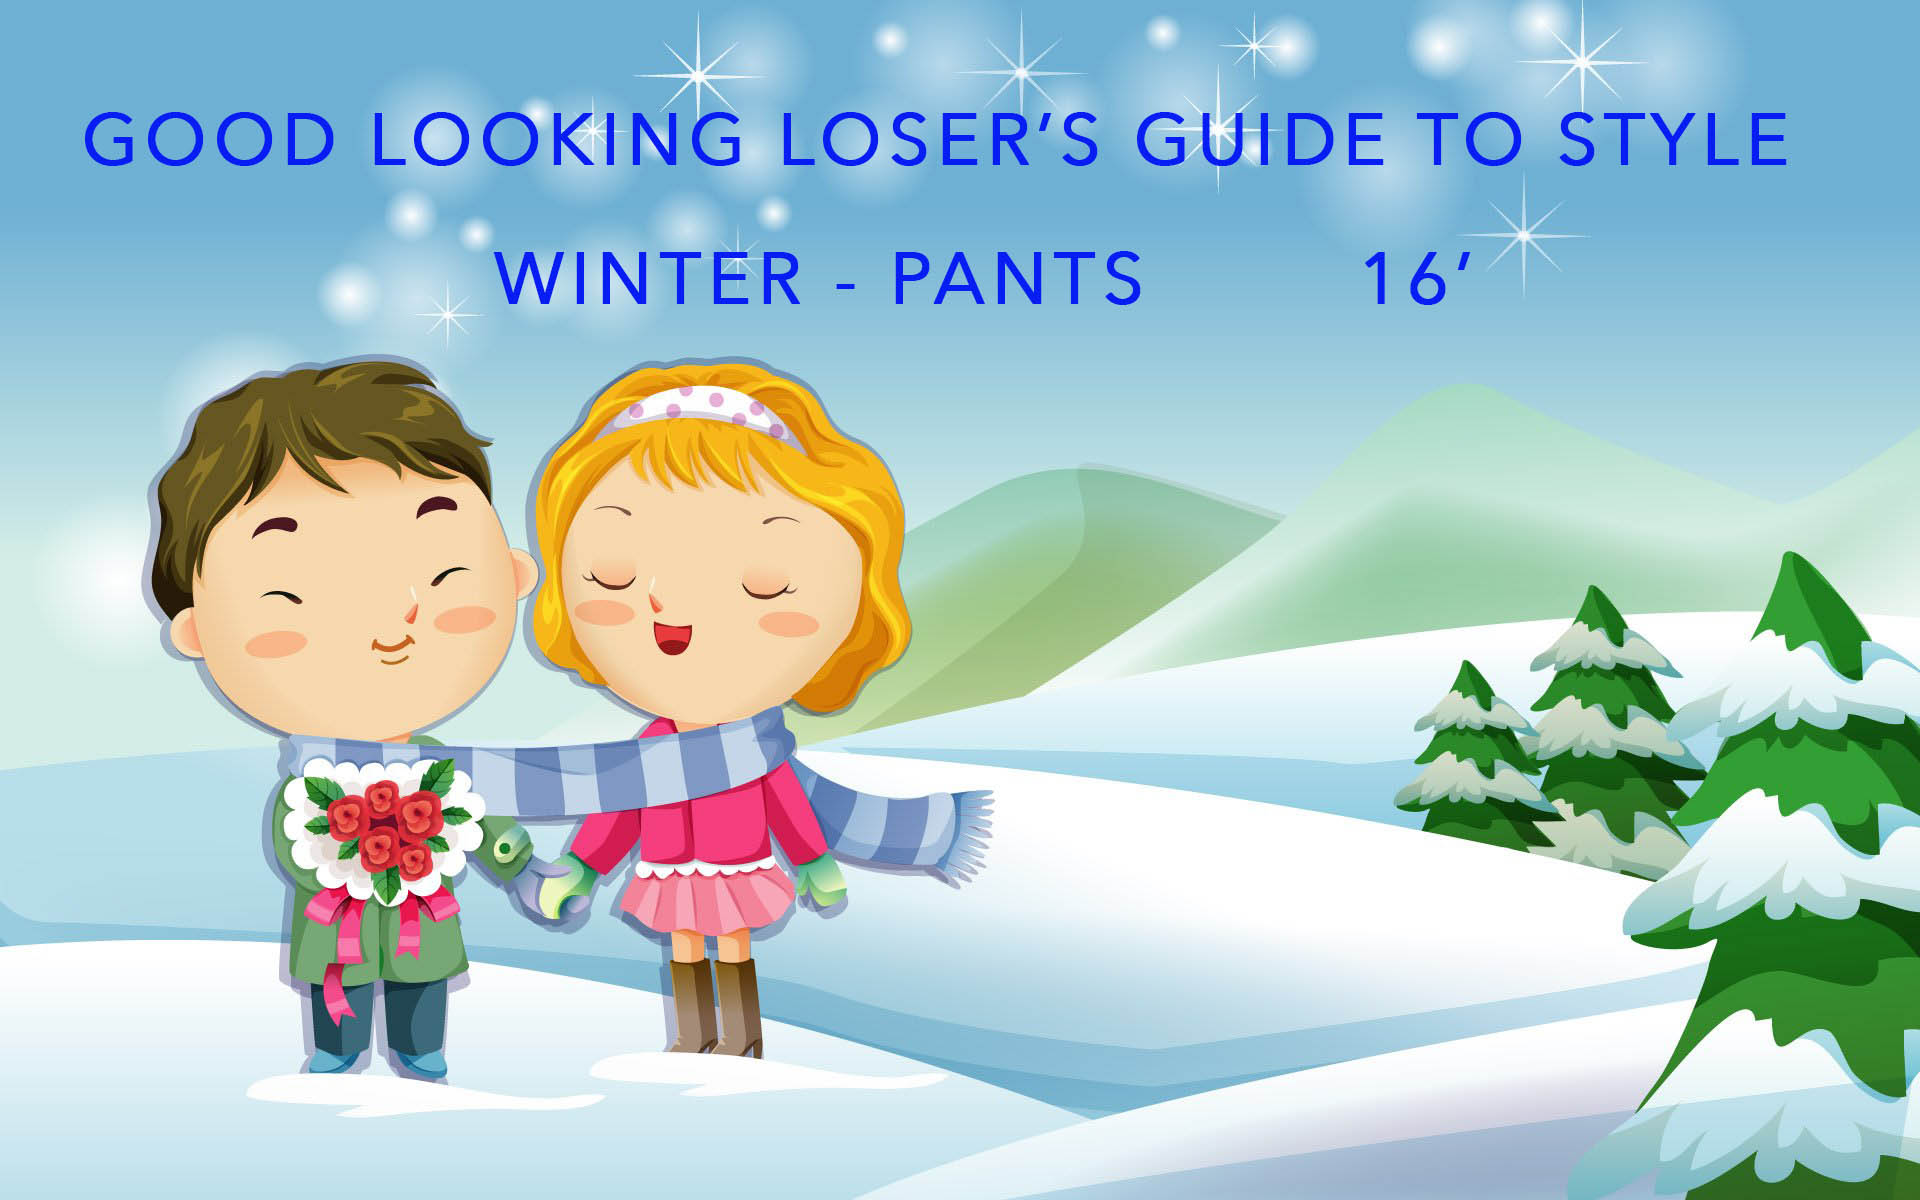 Good Looking Loser's Winter 2016 Guide to Style (Pants)